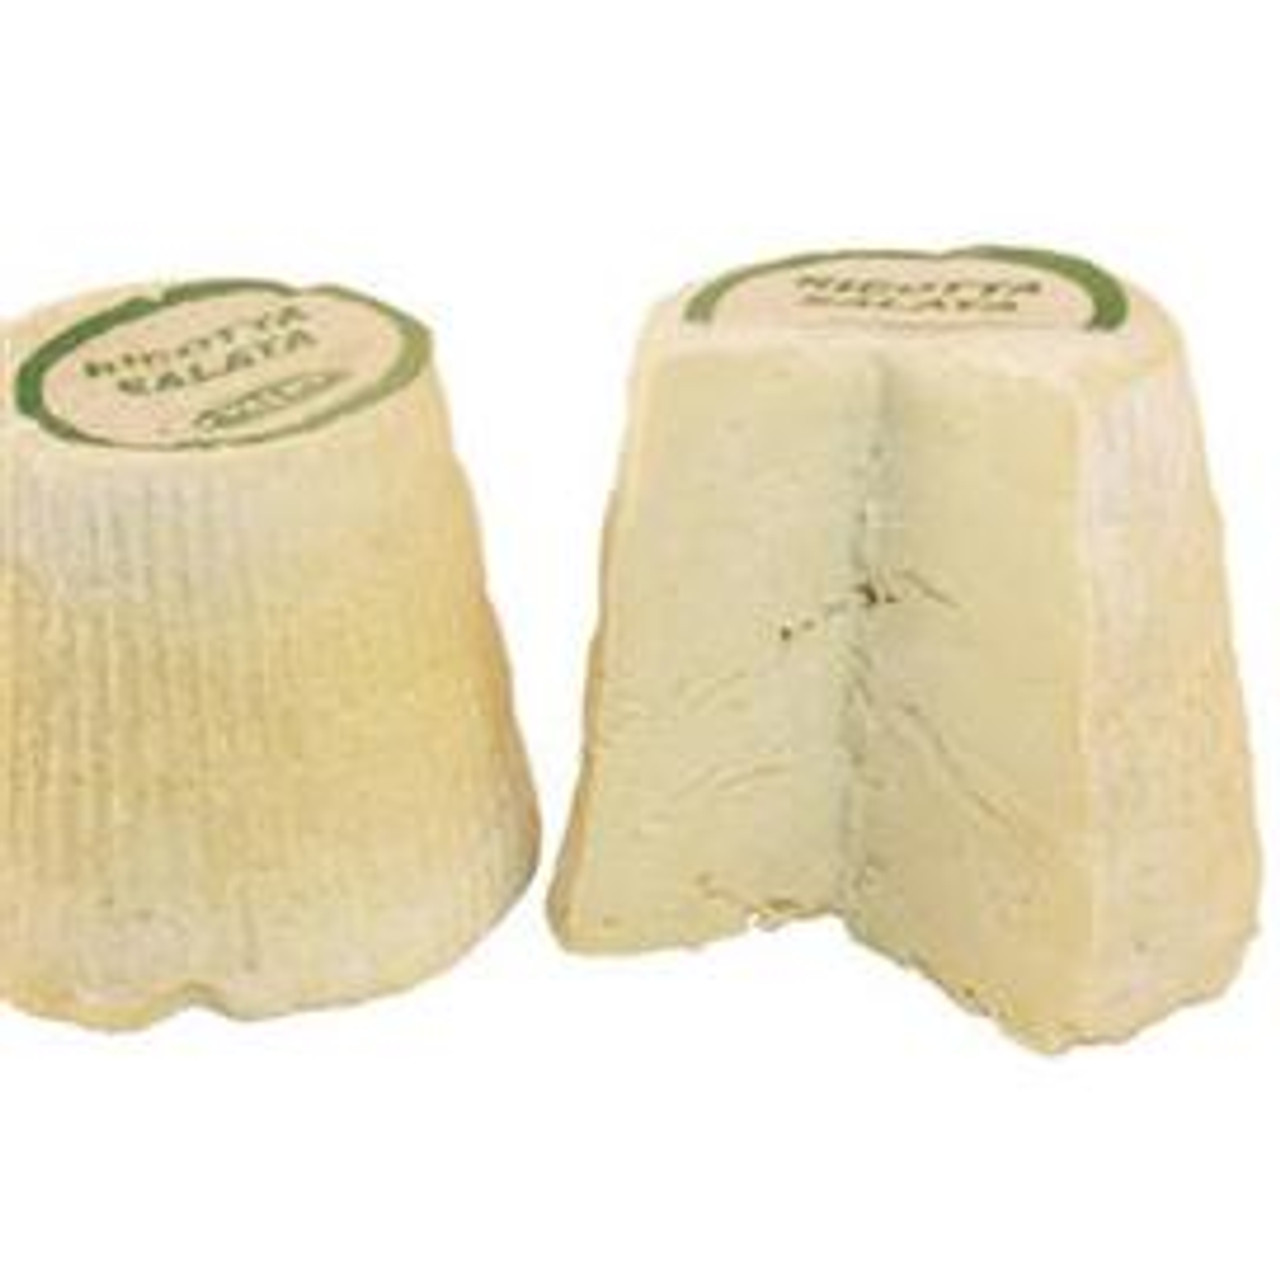 Imported Ricotta Salata Grating Cheese